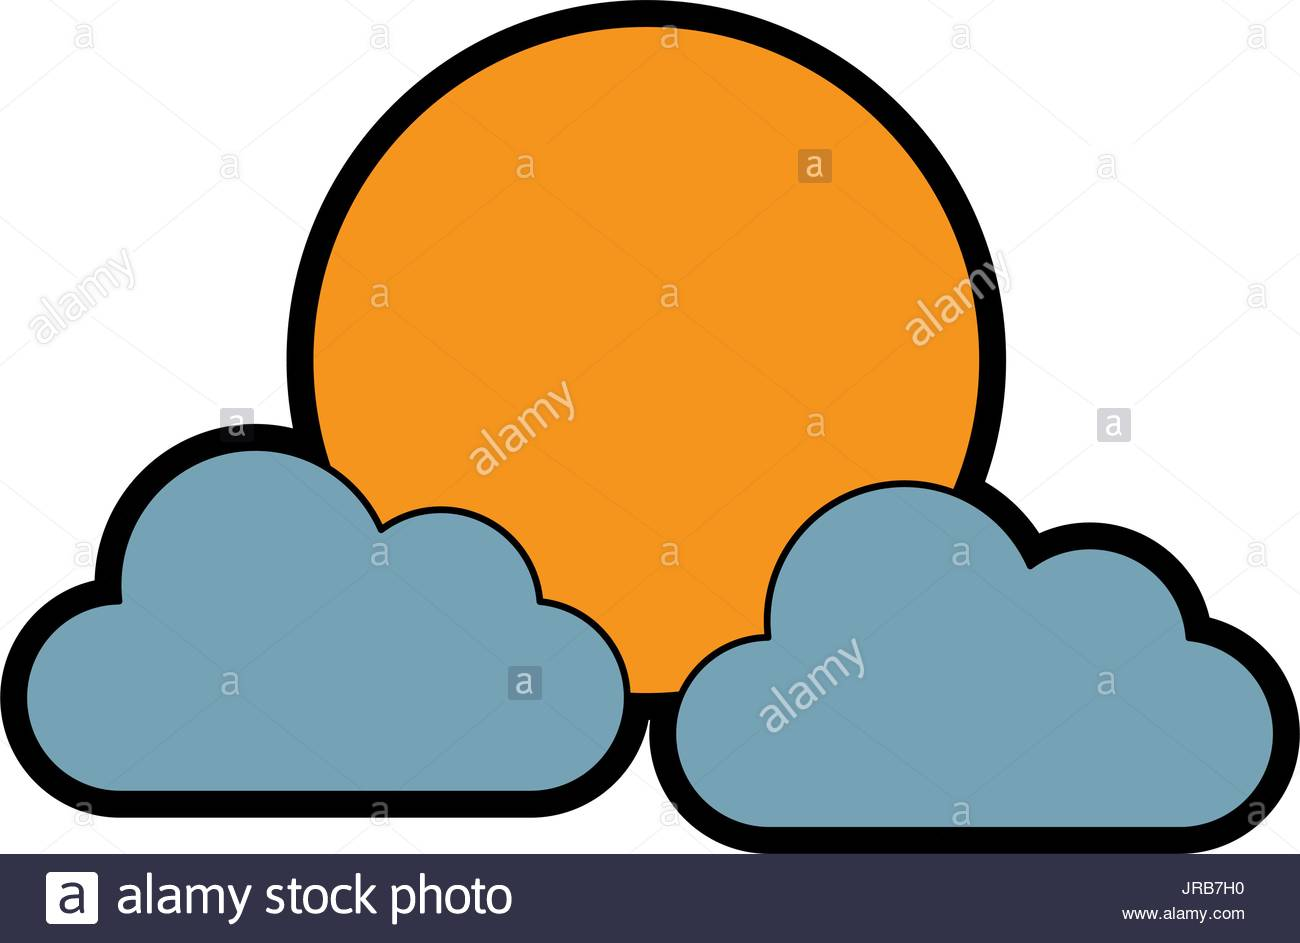 1300x943 Sun Clouds Weather Forecast Climate Sky Stock Vector Art